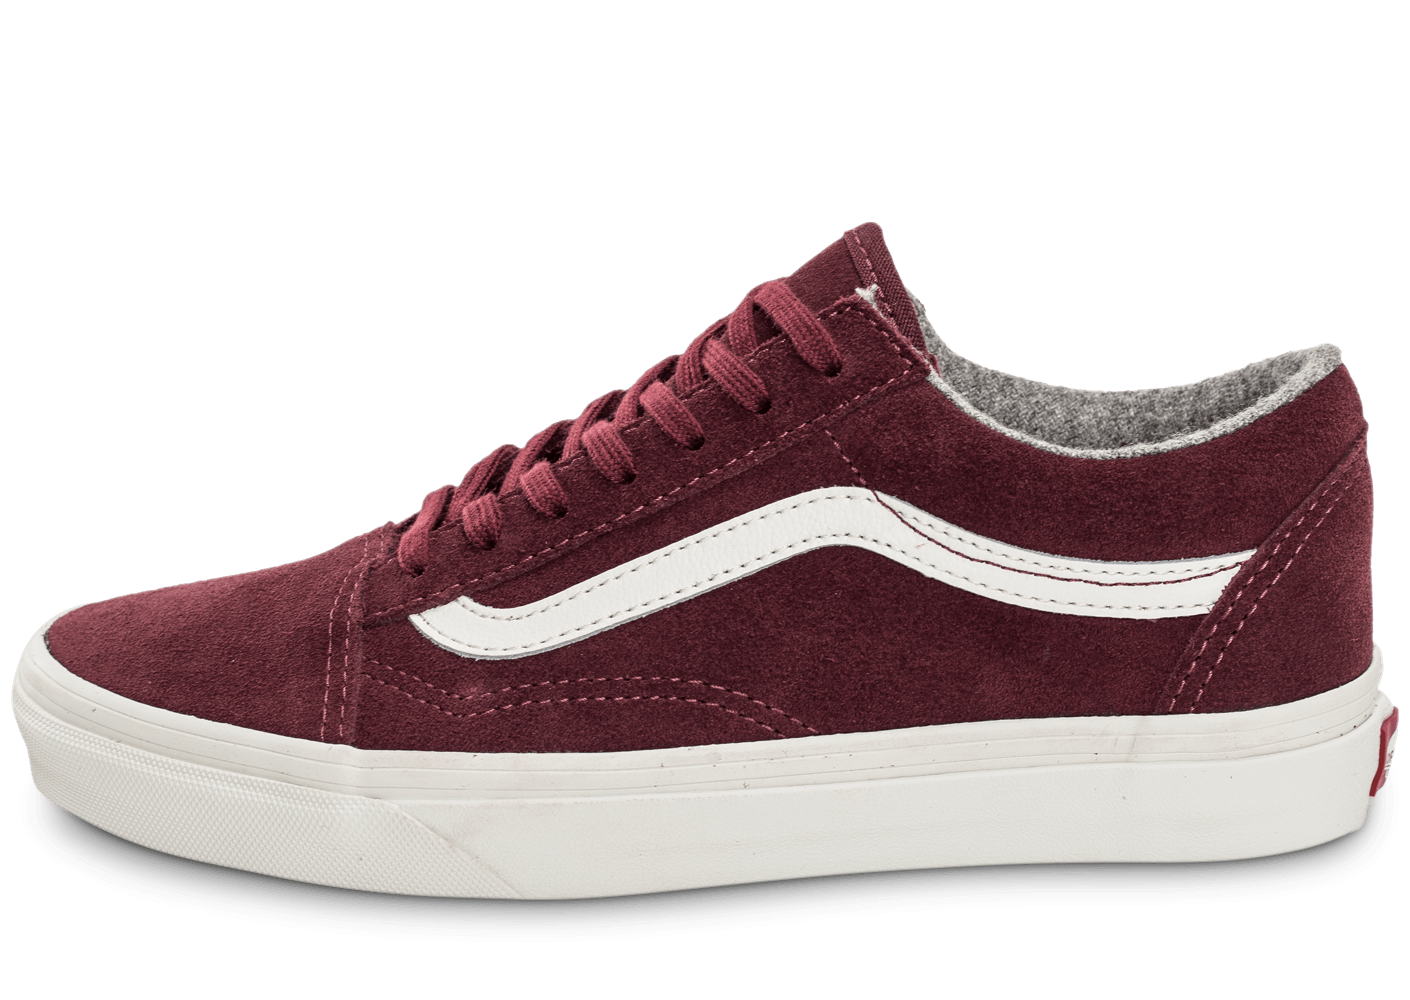 Chaussures Vans Old Skool bleues Fashion unisexe